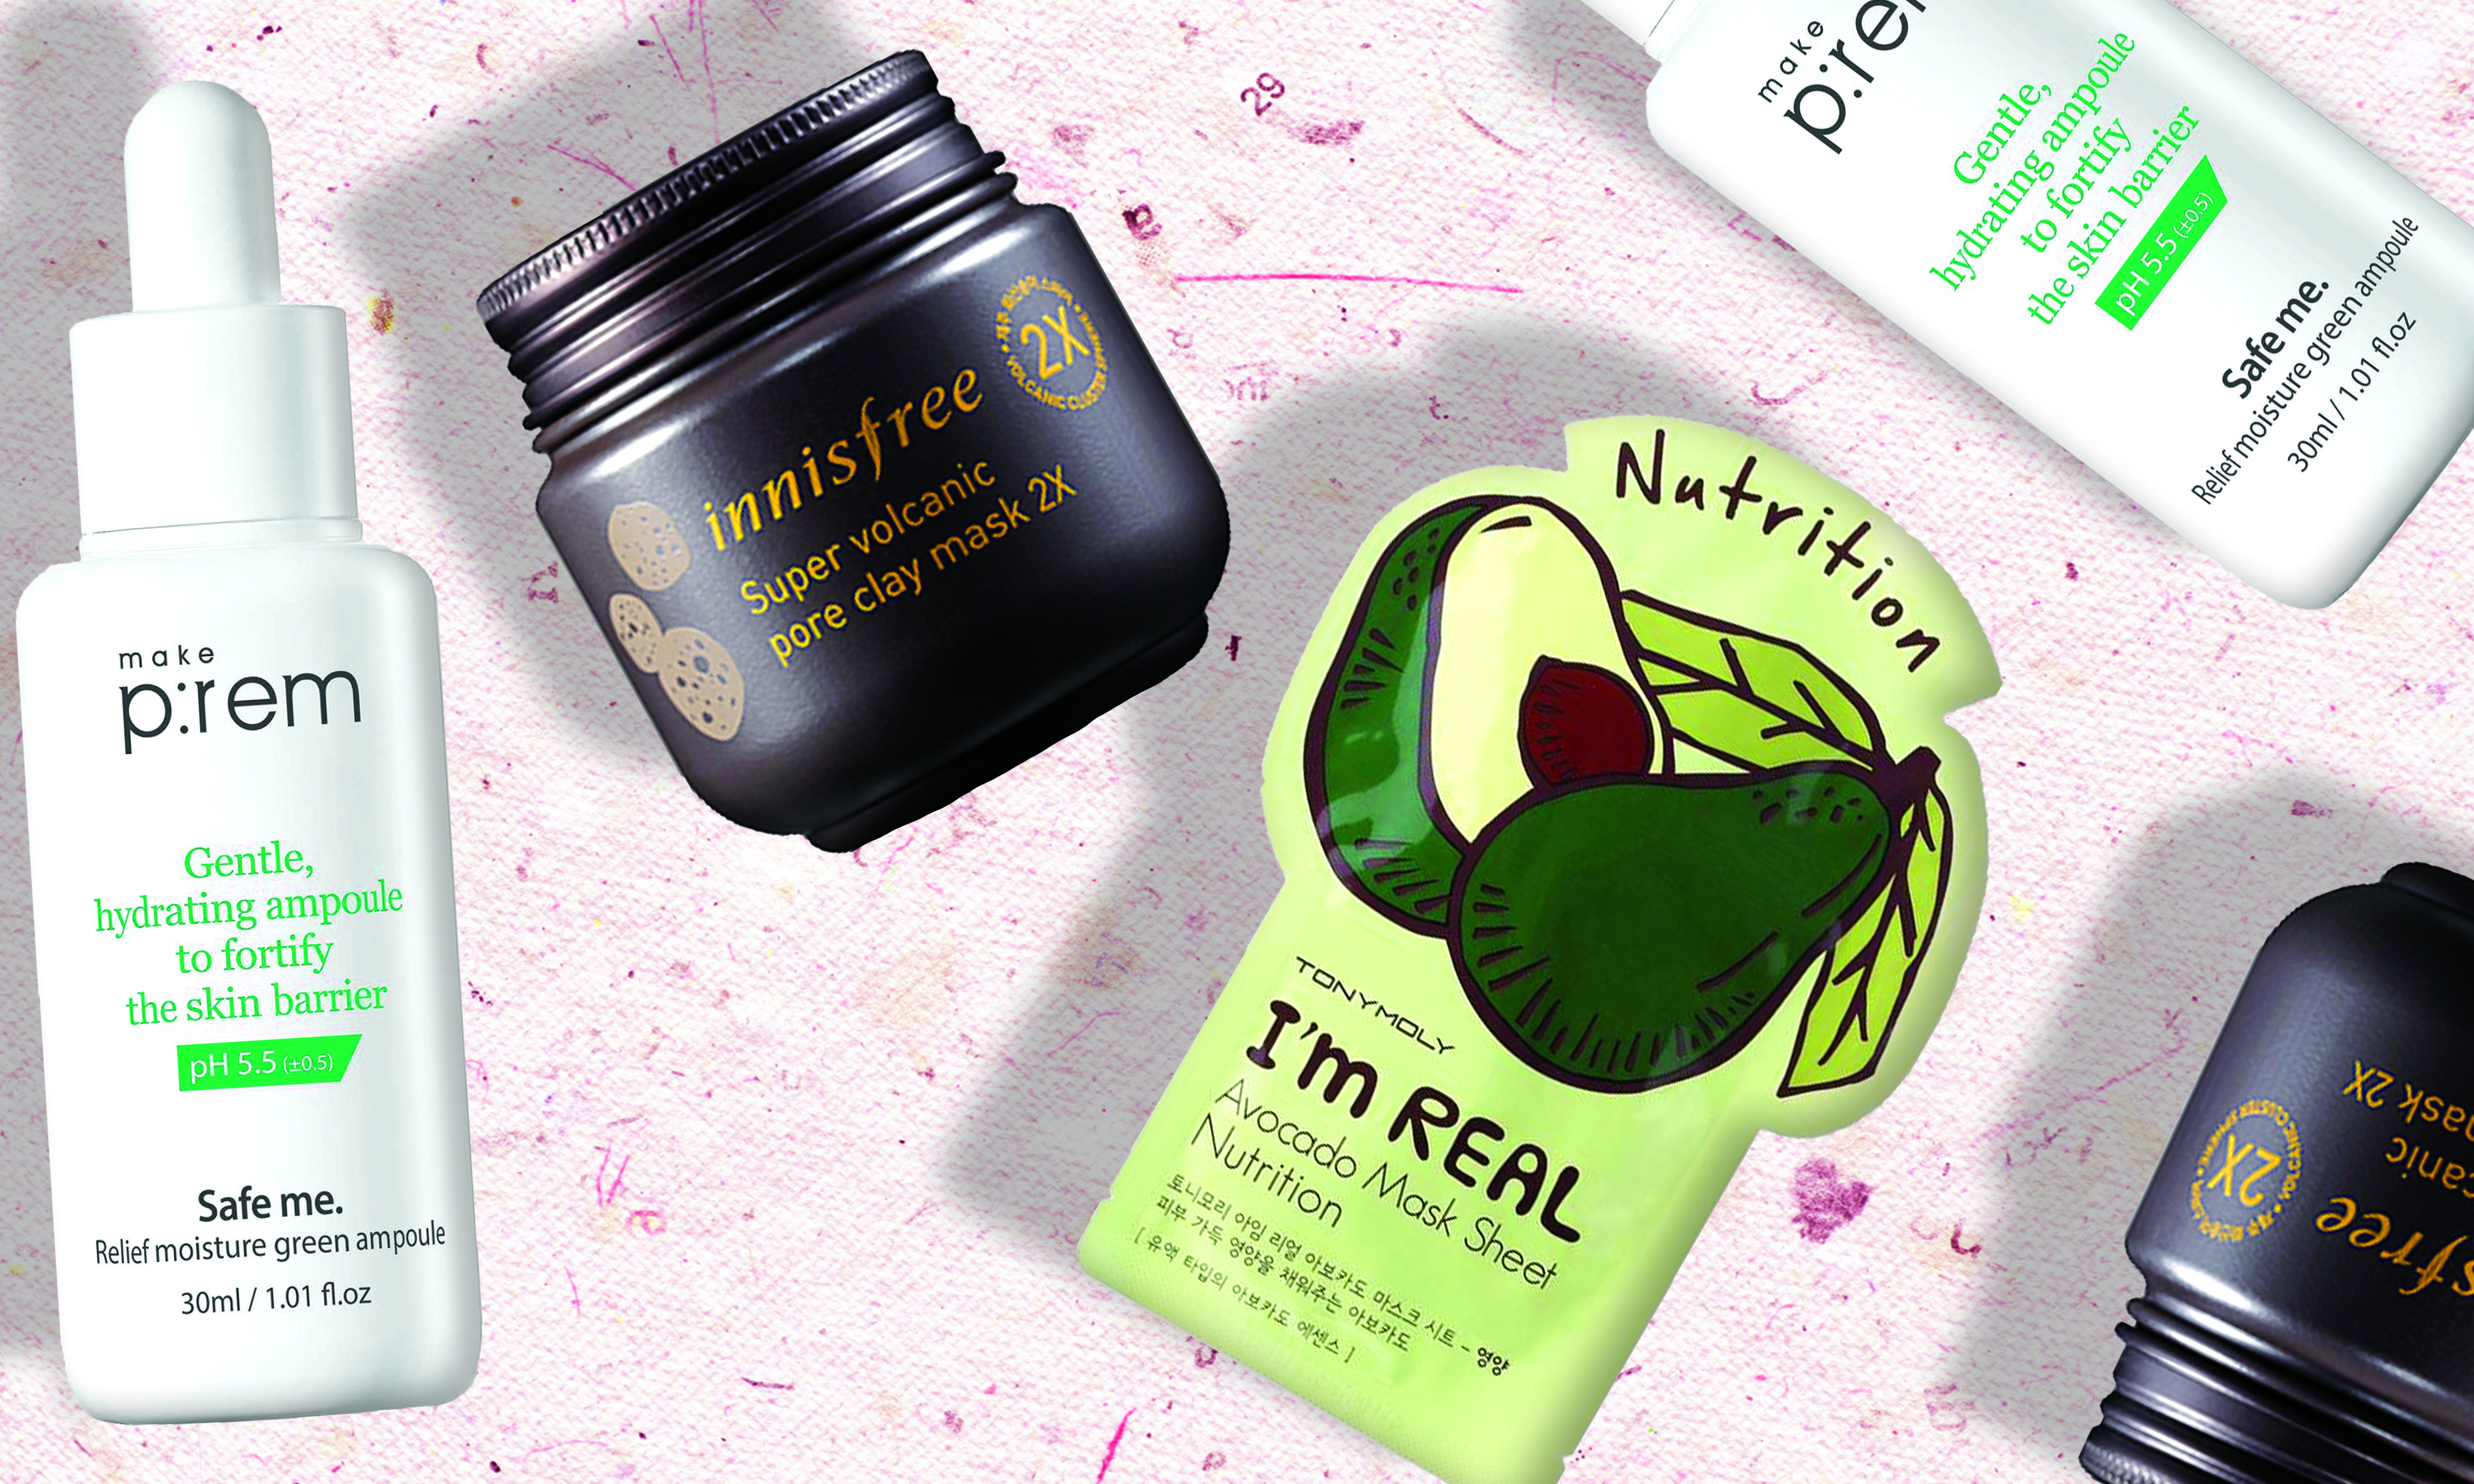 The 9 Best Selling Korean Skin Care Products Bestselling Care Korean Products In 2020 Top Skin Care Products Popular Skin Care Products Fragrance Free Skin Care